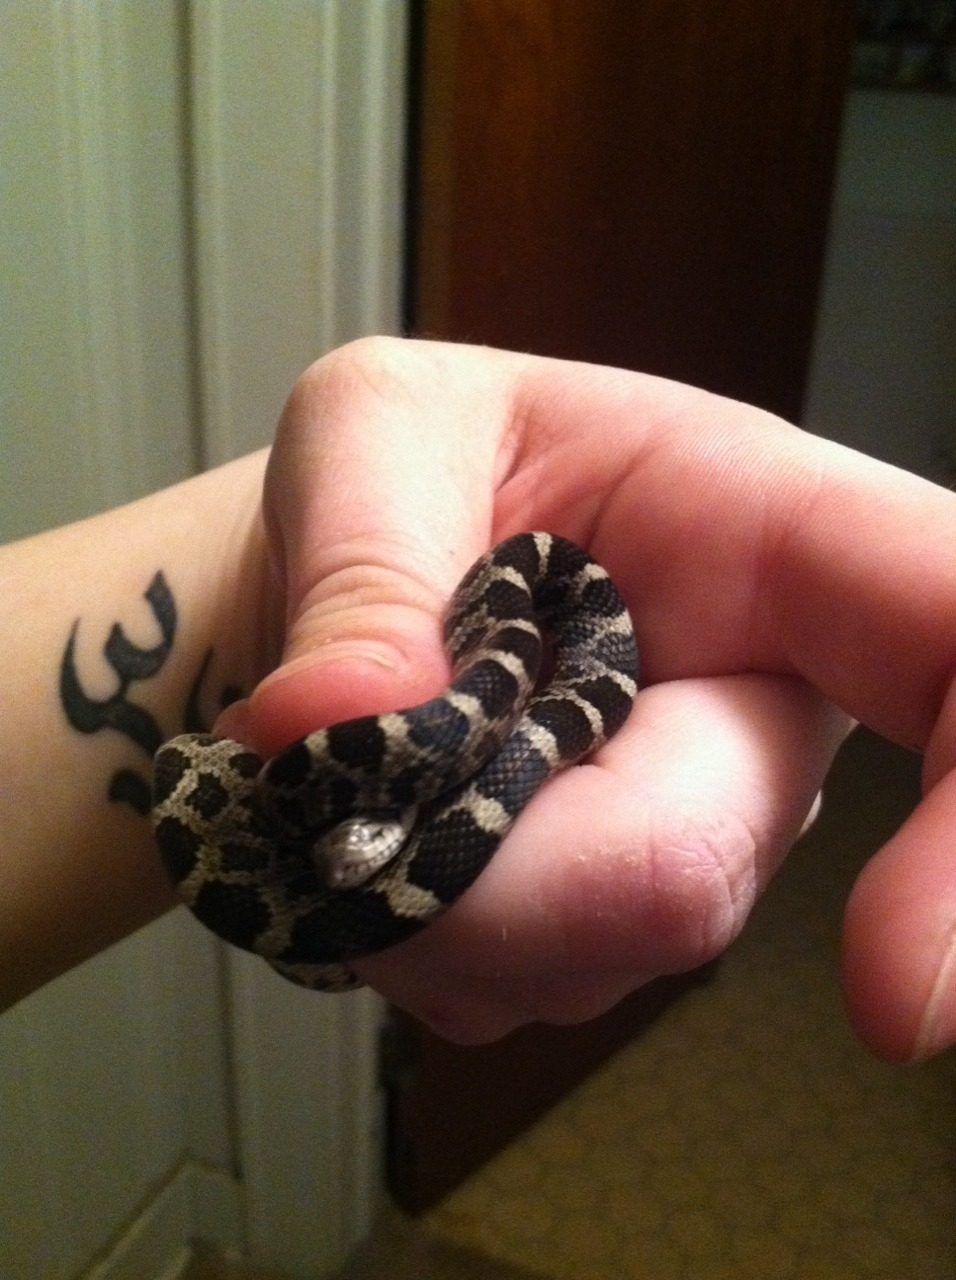 this is the second one of these little babies that I've caught today - one at my grandmothers outside, and now at my house.. this one was slitherin' through my hallway haha. took it outside and let it go, it was a cute little thing.